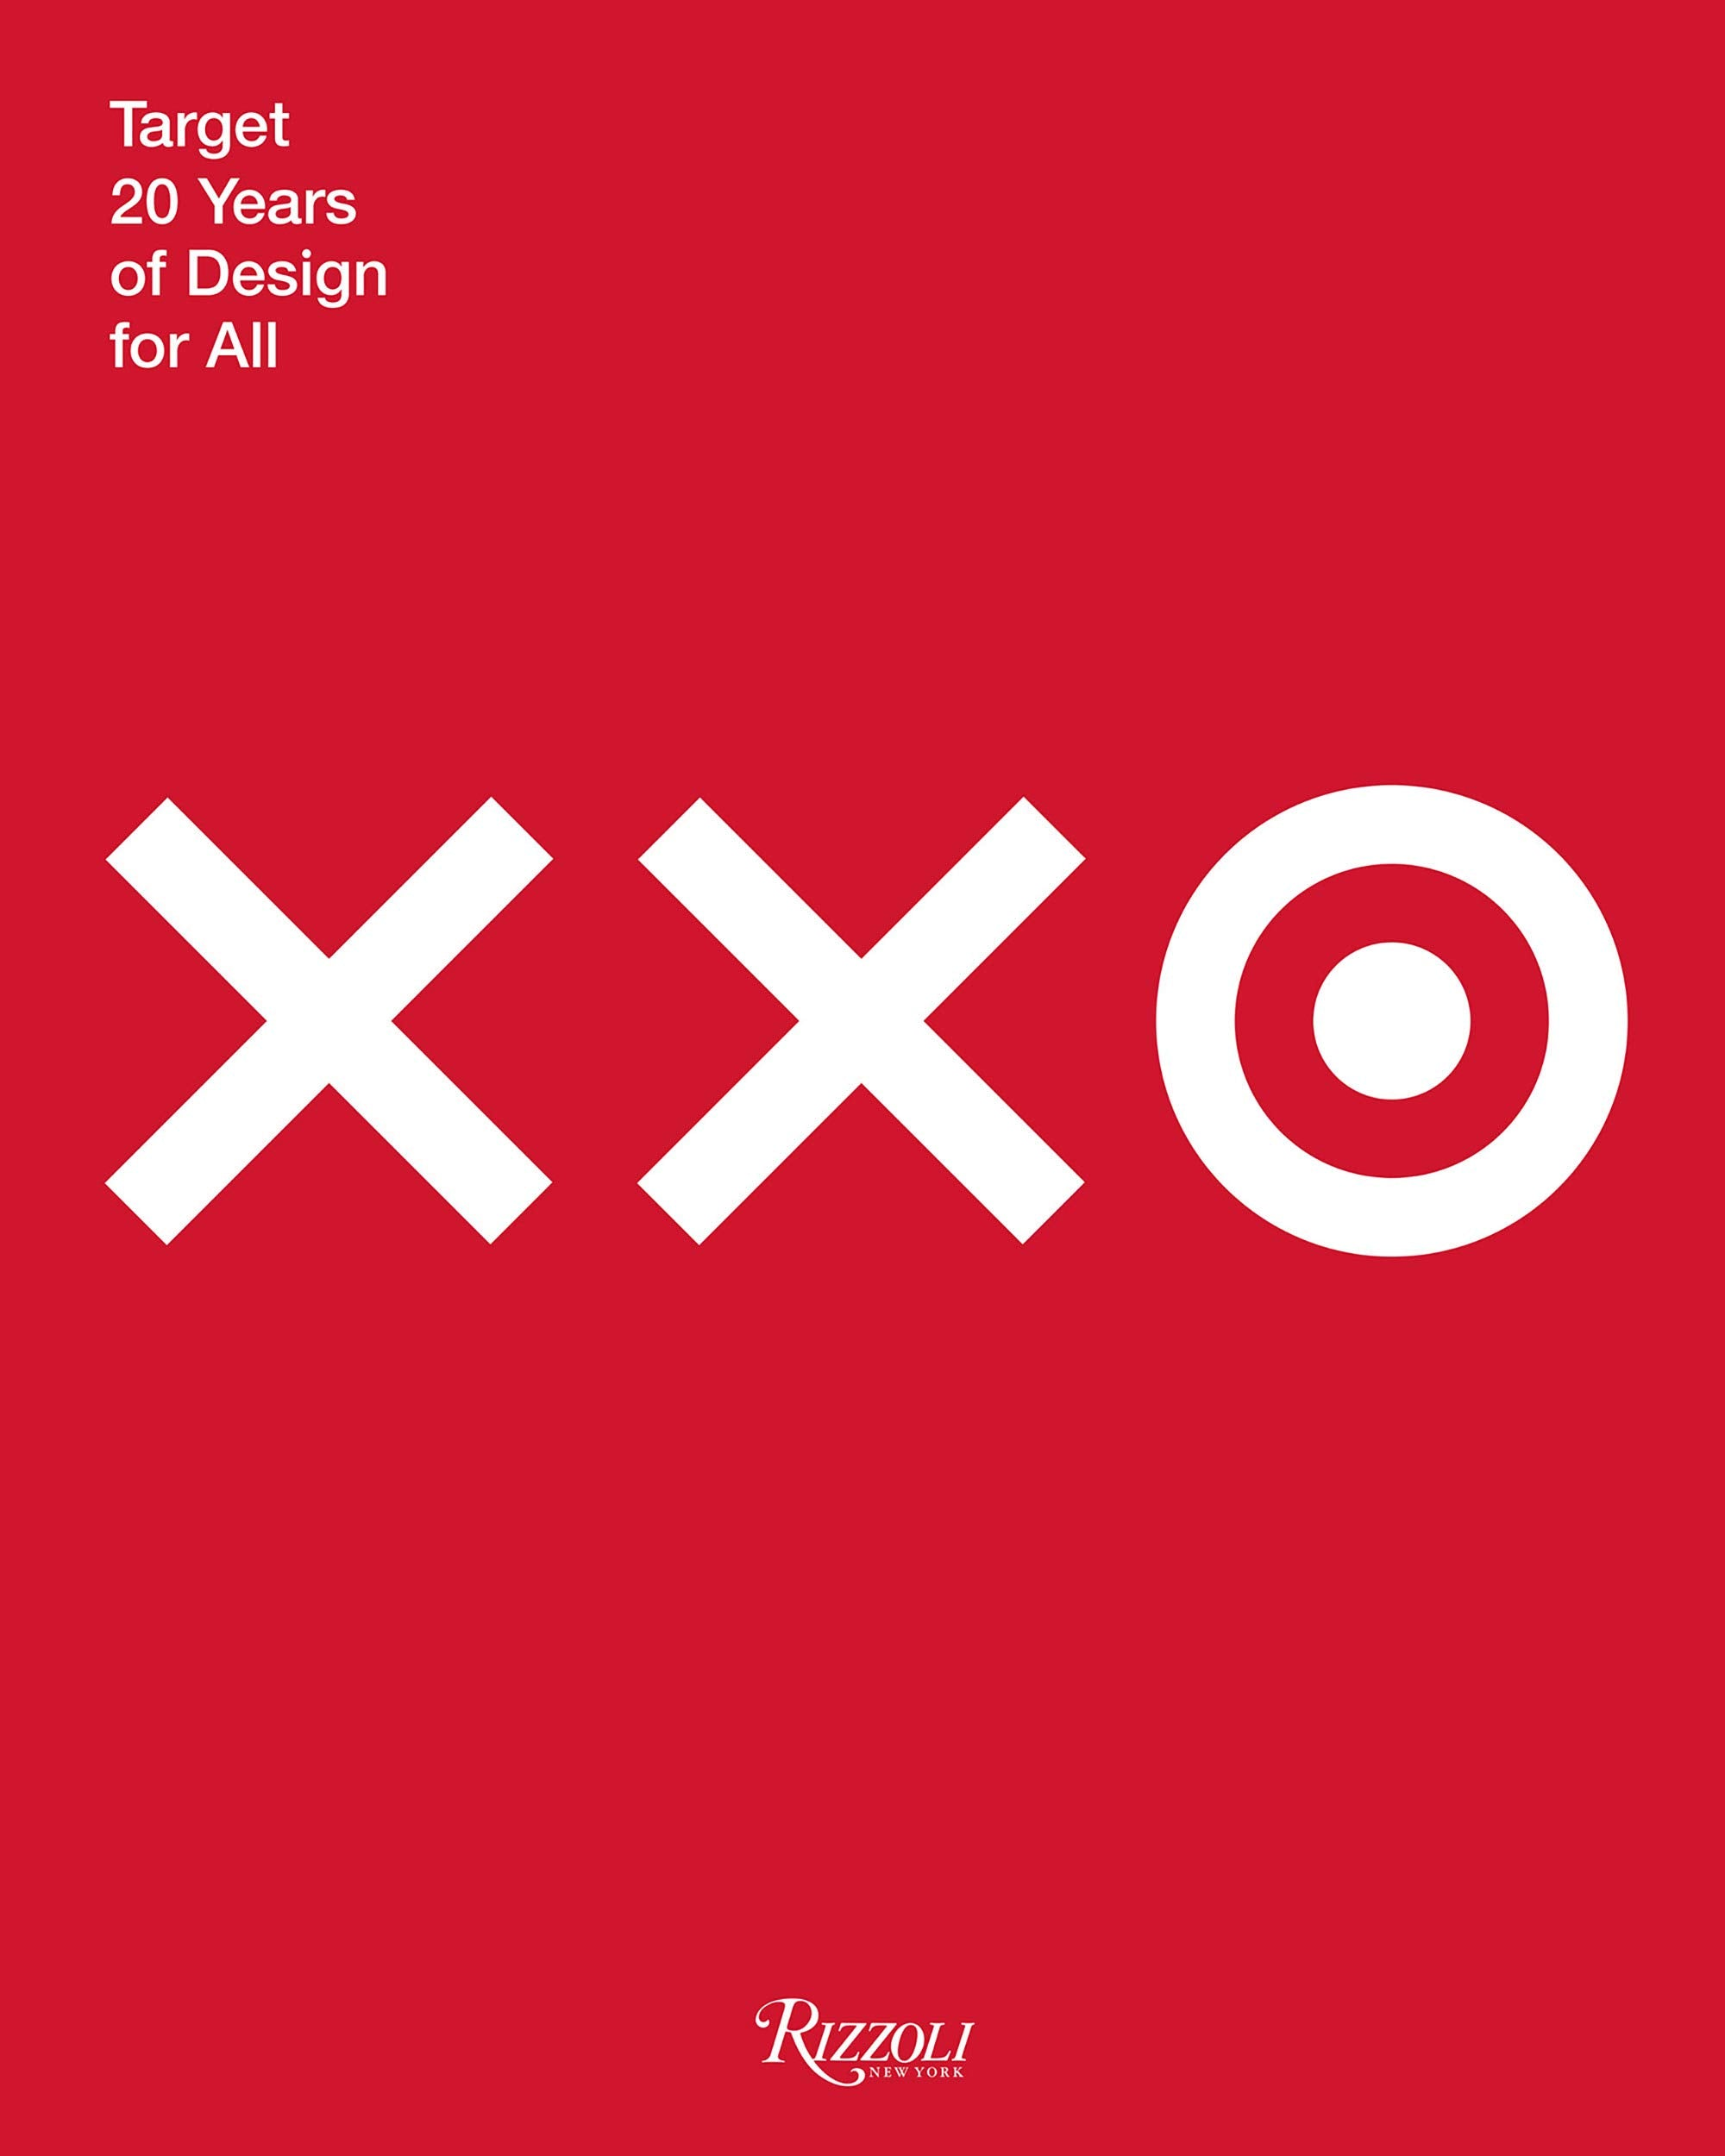 Target: 20 Years of Design Book